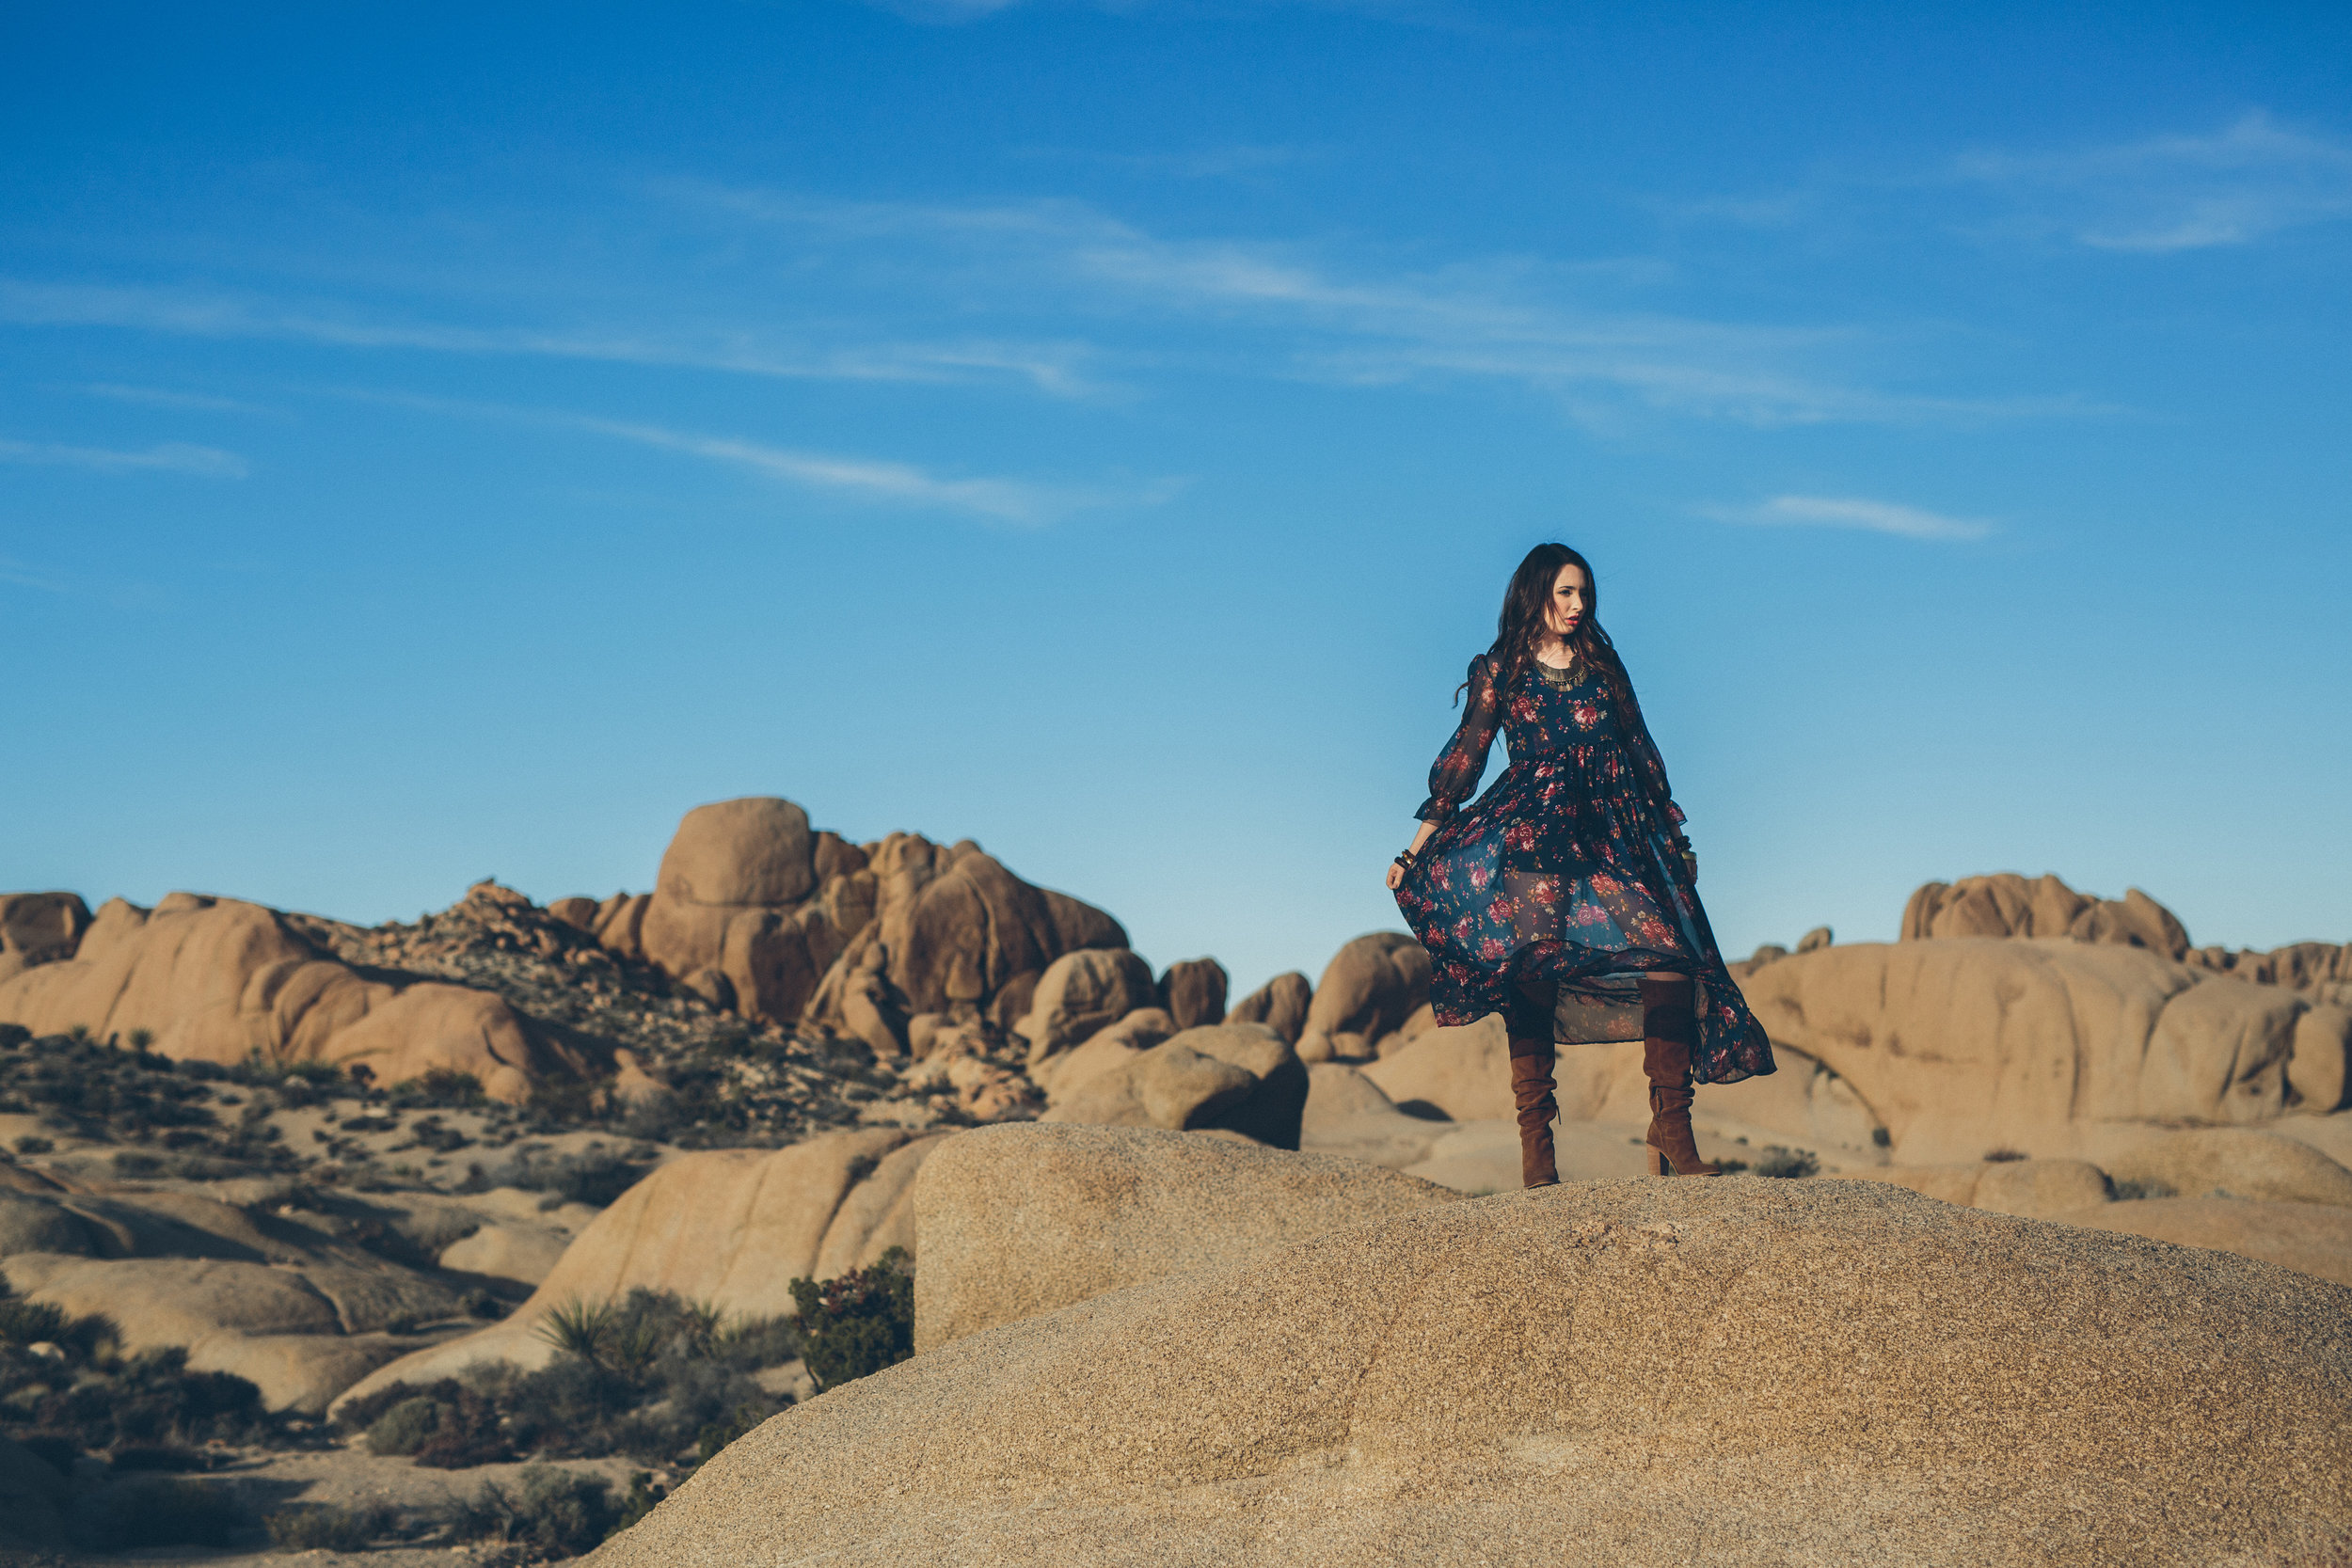 Senior photo on rocks in Joshua Tree National Park of girl in long dress with knee high boots. Photo by Jolene Dombrowski